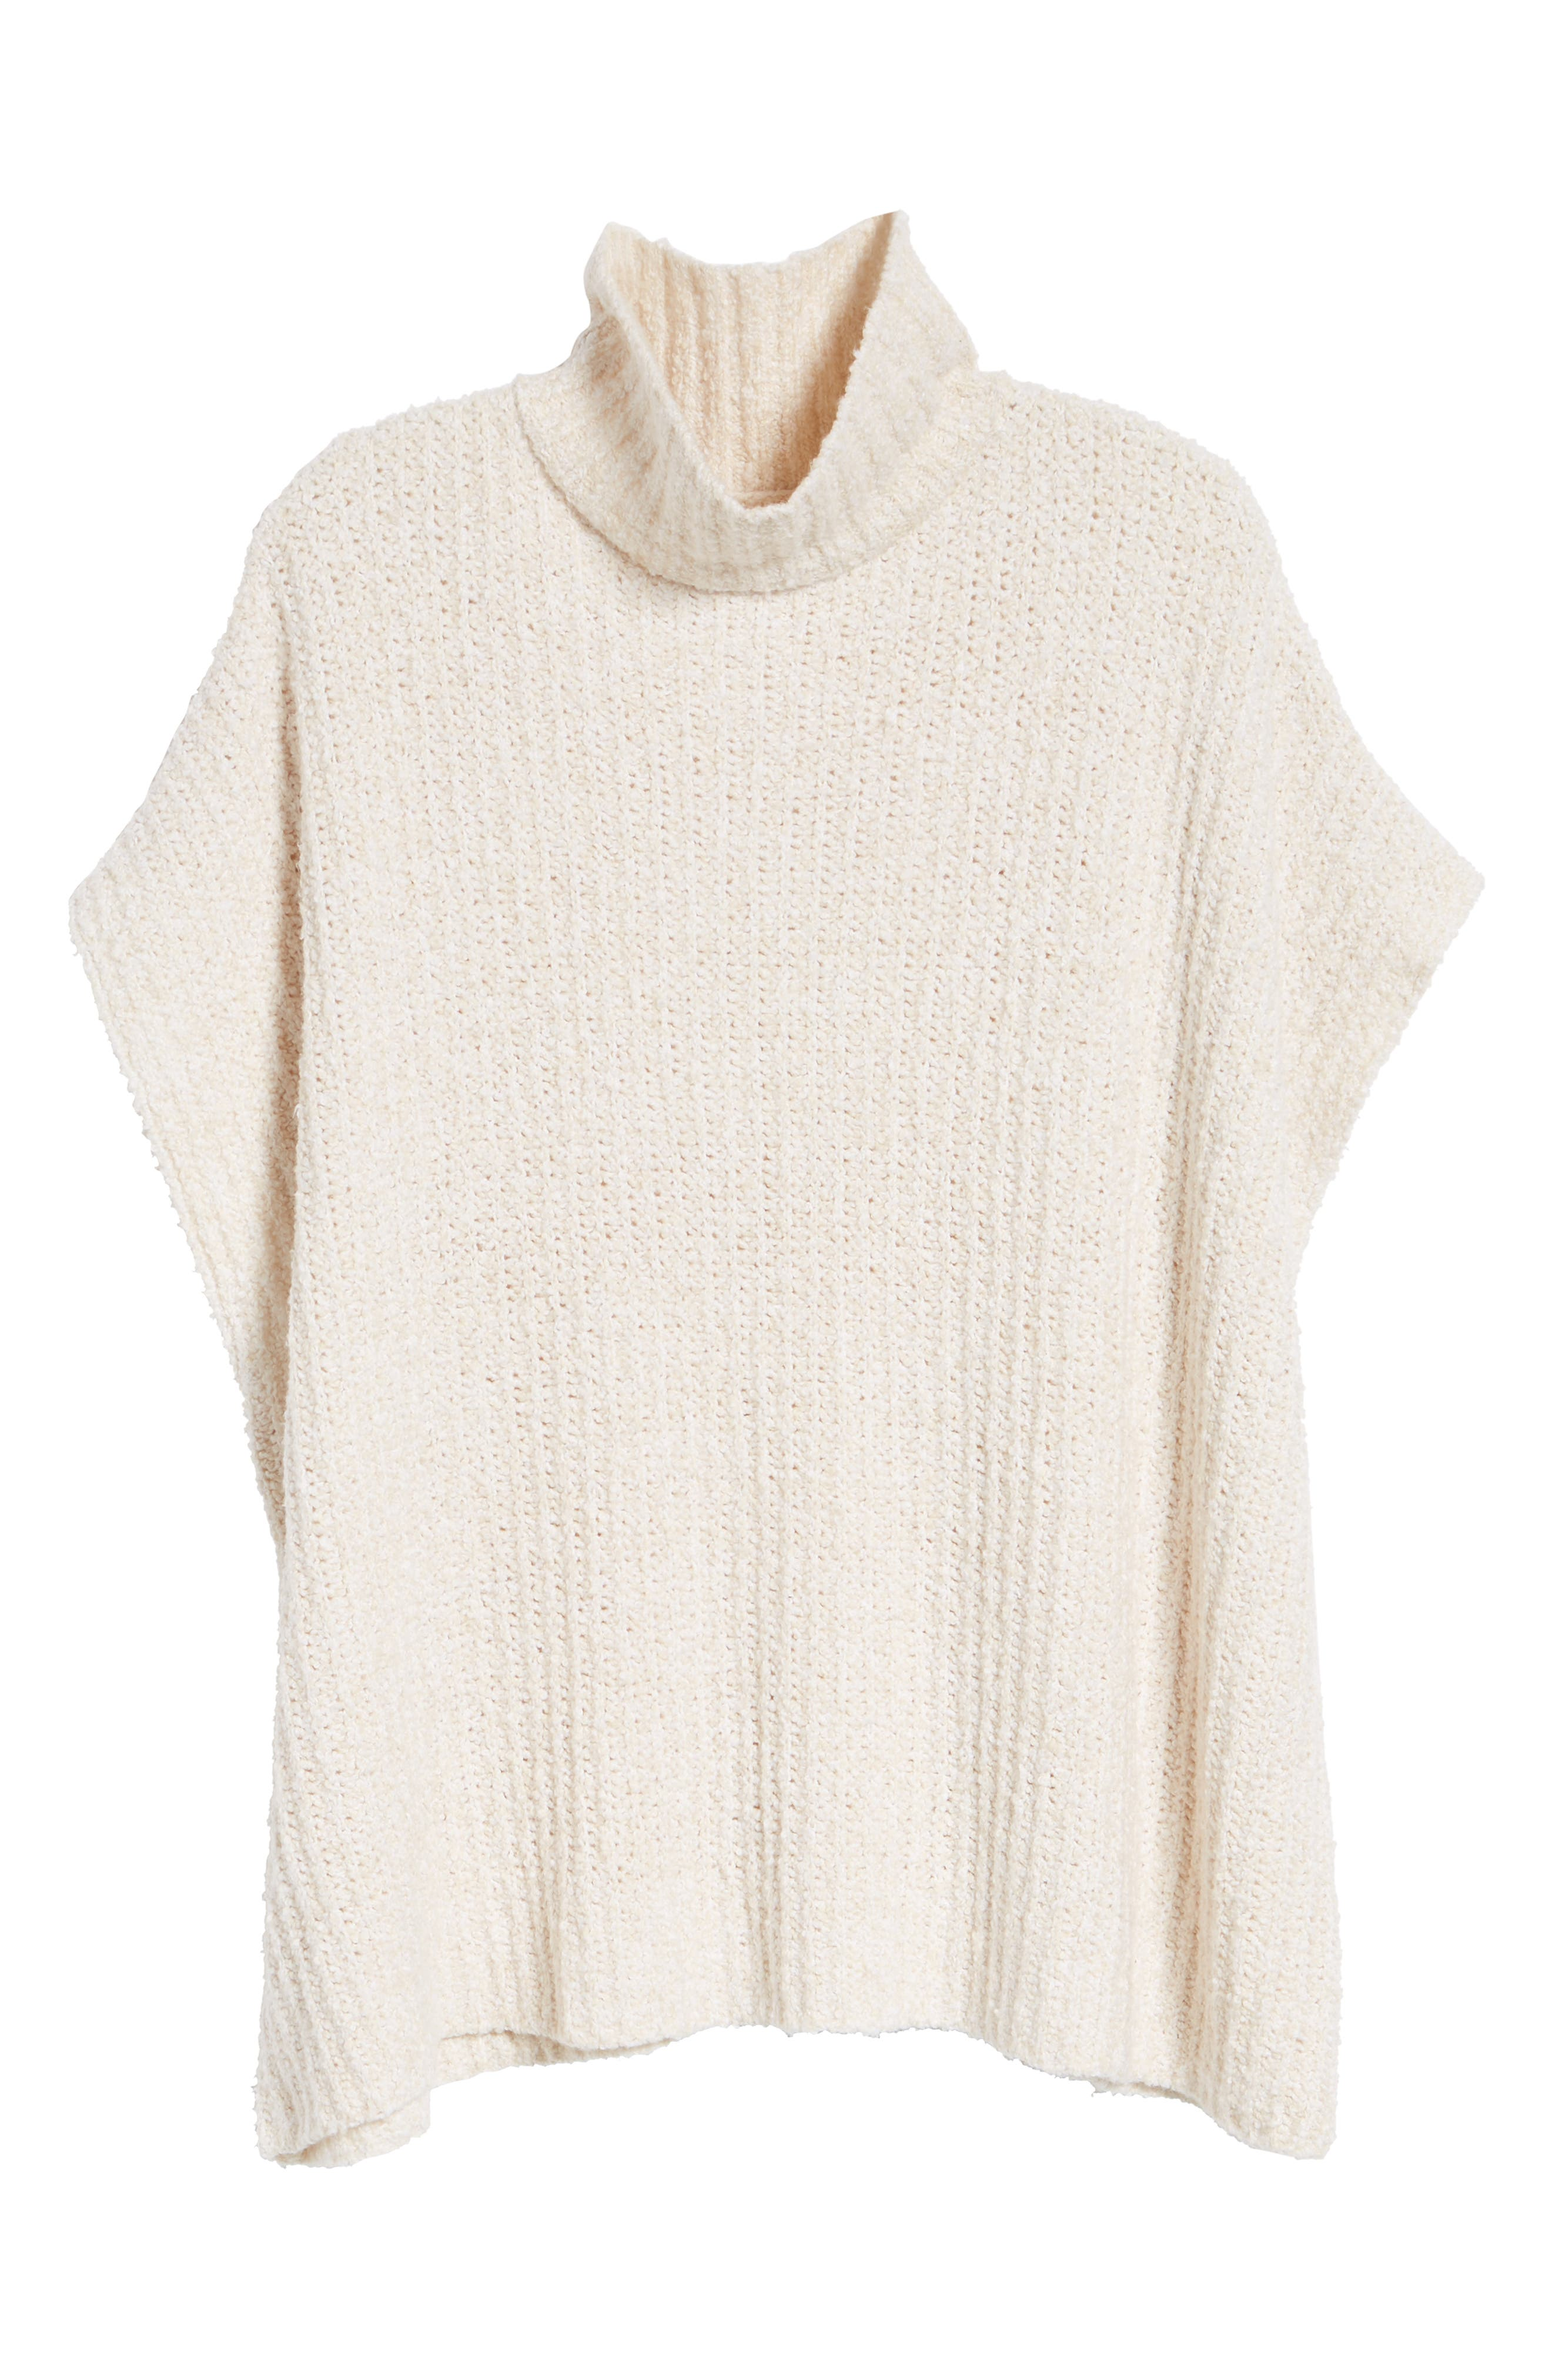 Ribbed Poncho Sweater,                             Alternate thumbnail 7, color,                             IVORY